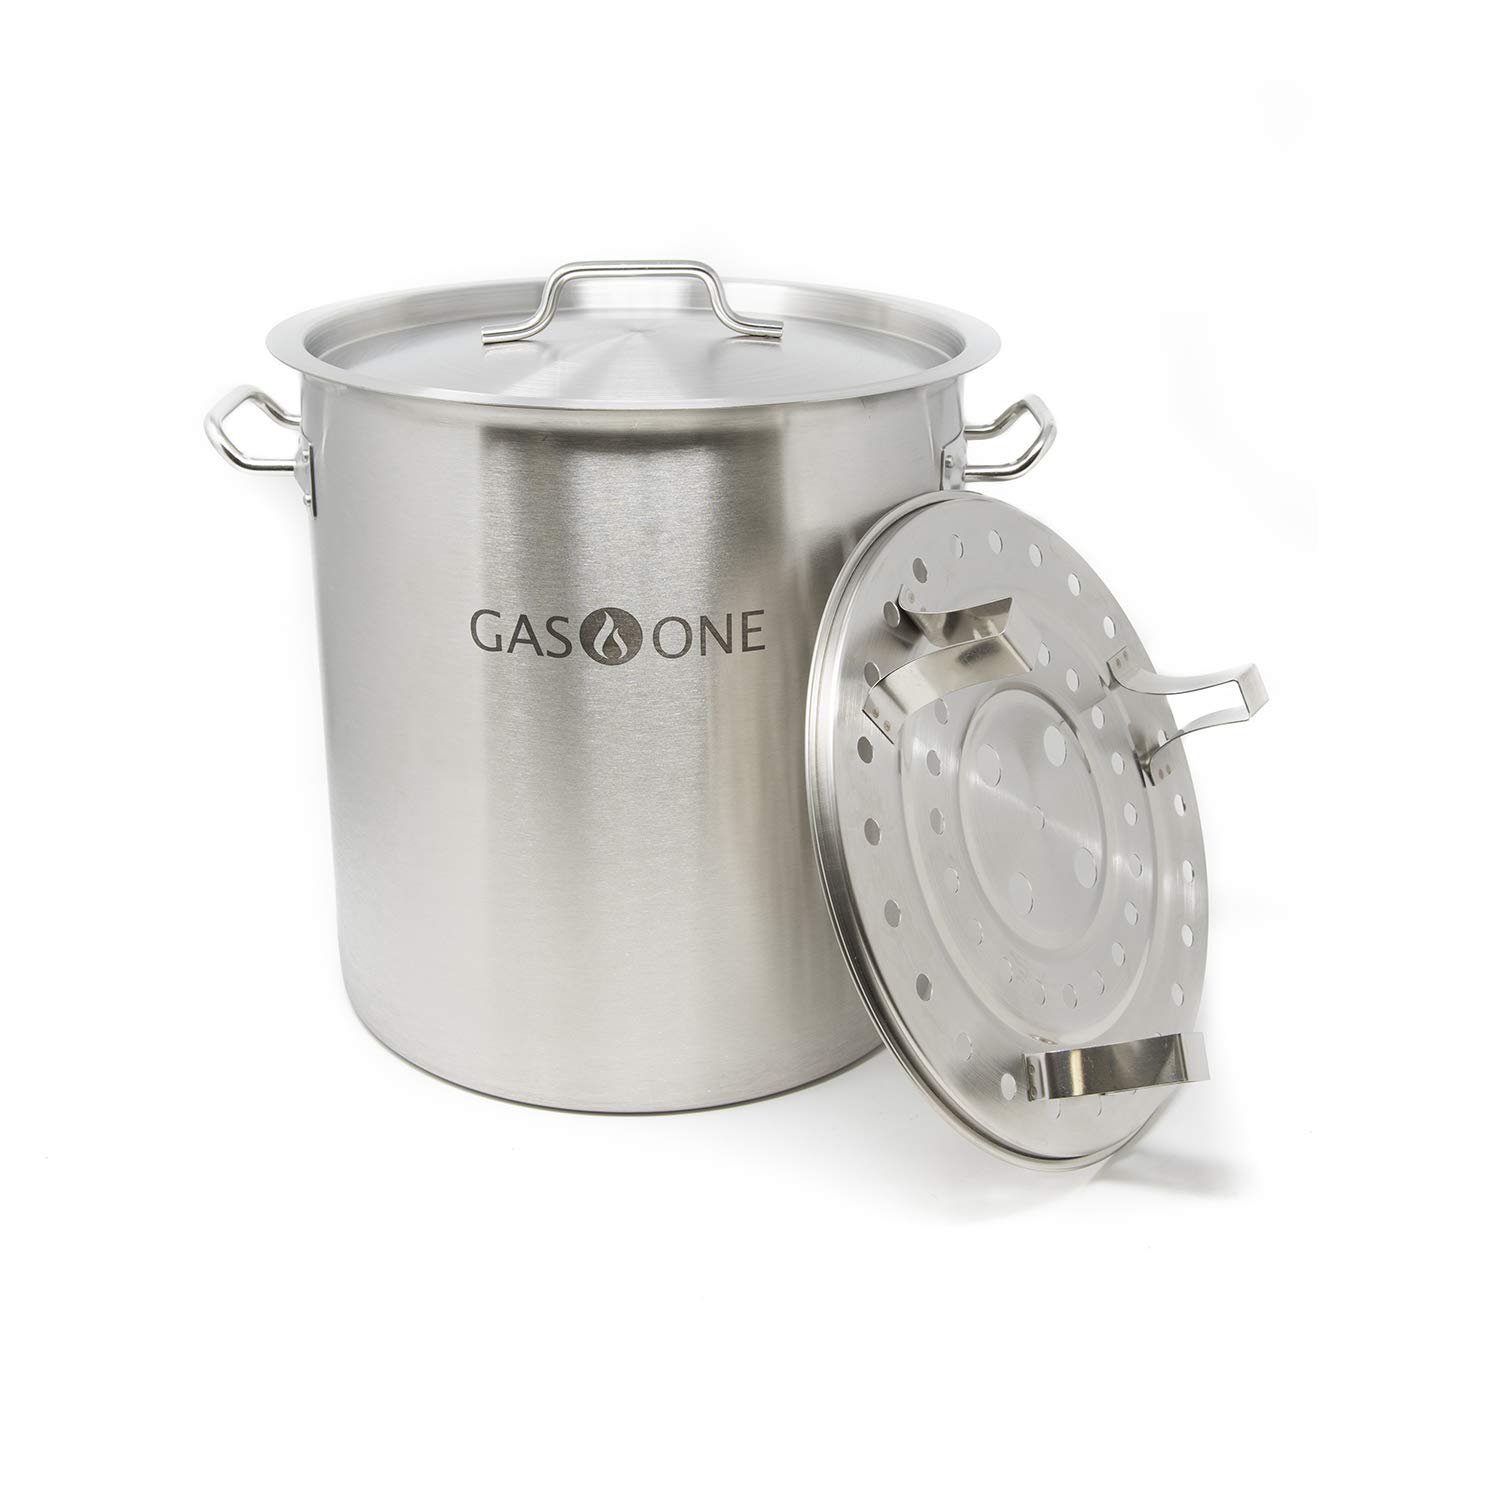 Gas One Stainless Steel Stock Pot with Steamer 8 Gallon with lid/cover & Steamer Rack, Tamale, Dumpling, Crawfish, Crab Pot/Steamer Thickness 1mm Perfect for Homebrewing & Boiling Sap for Maple Syrup by GasOne